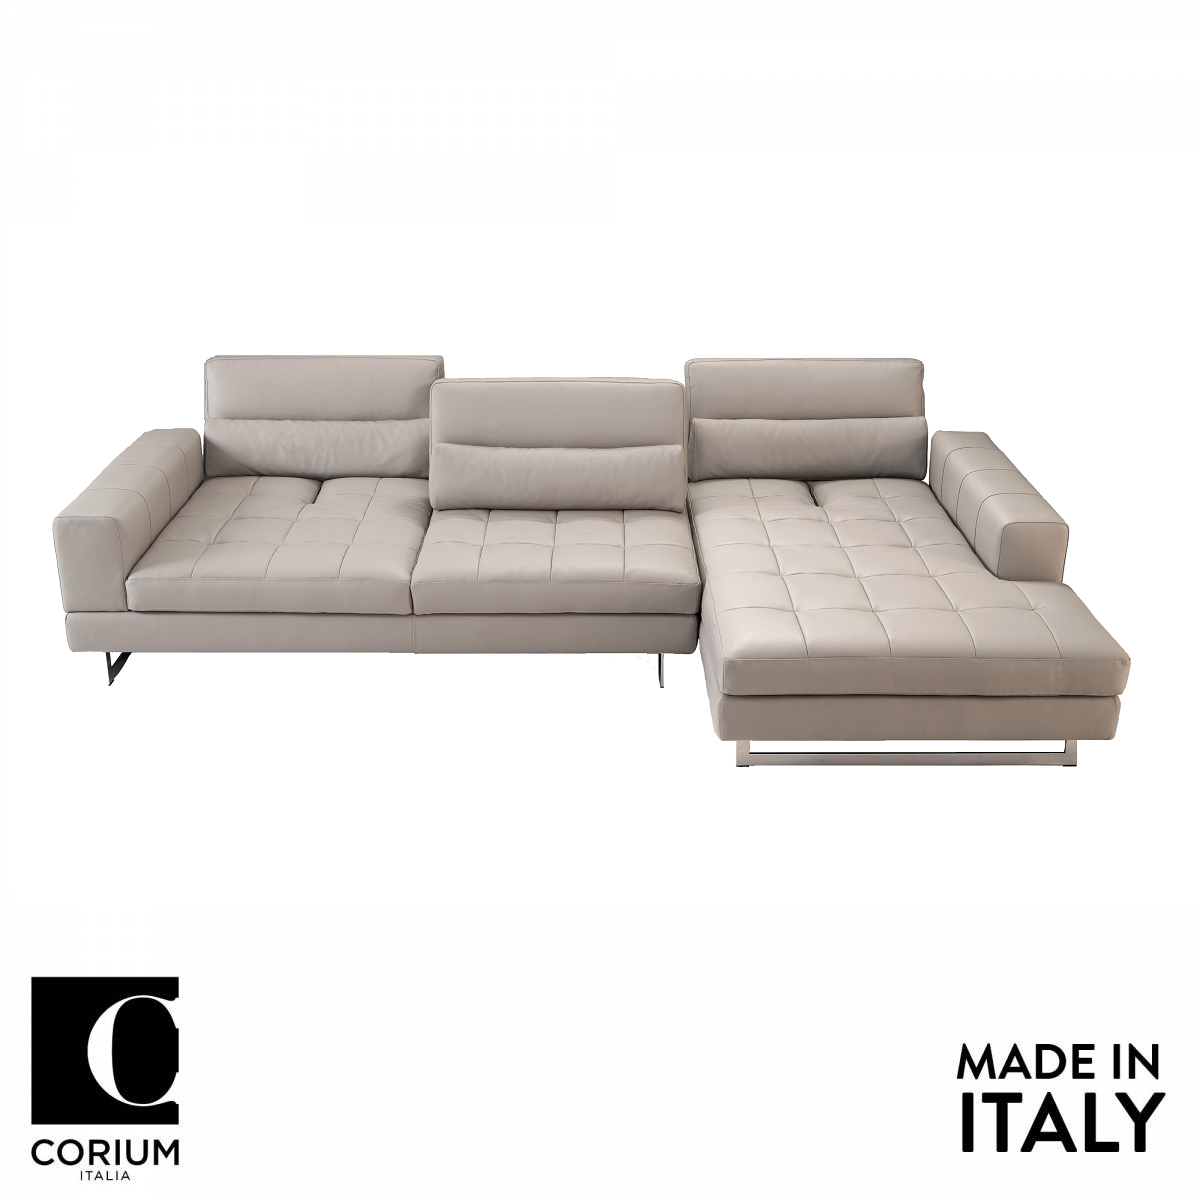 Sofa Made In Italy Italian Modern Sofa Bed Sb46 With Arms Fabric New Made In Italy Thesofa